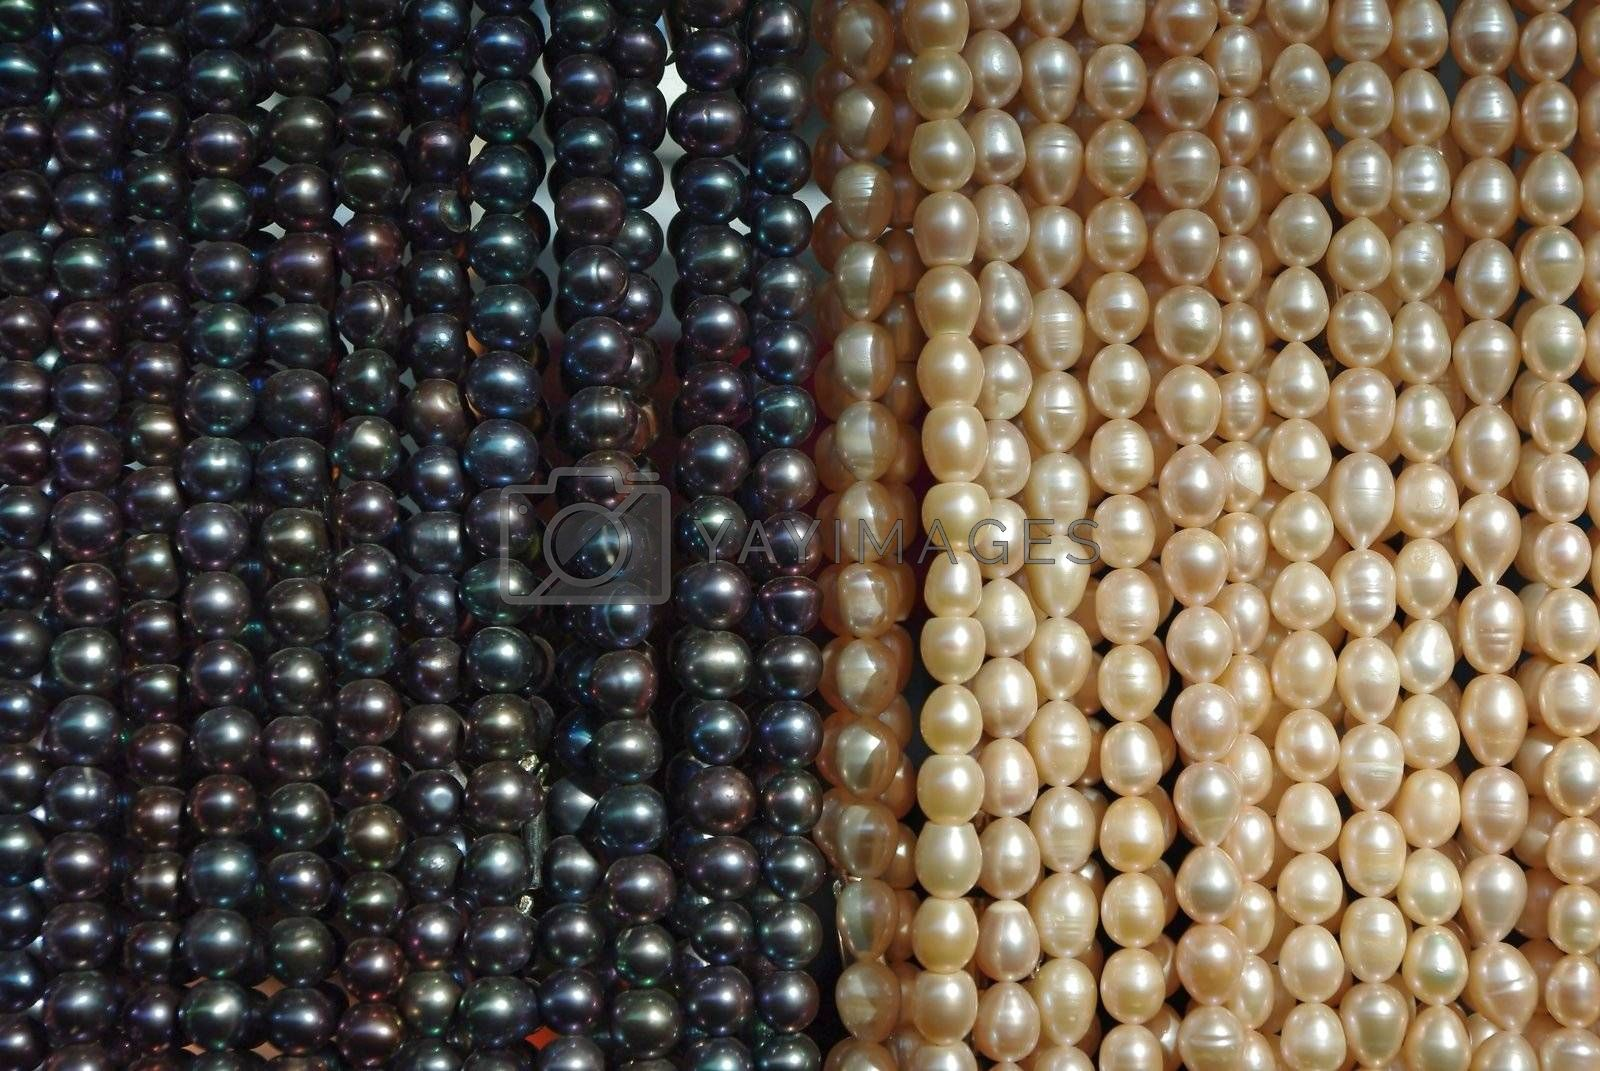 Texture from the different kind of pearl